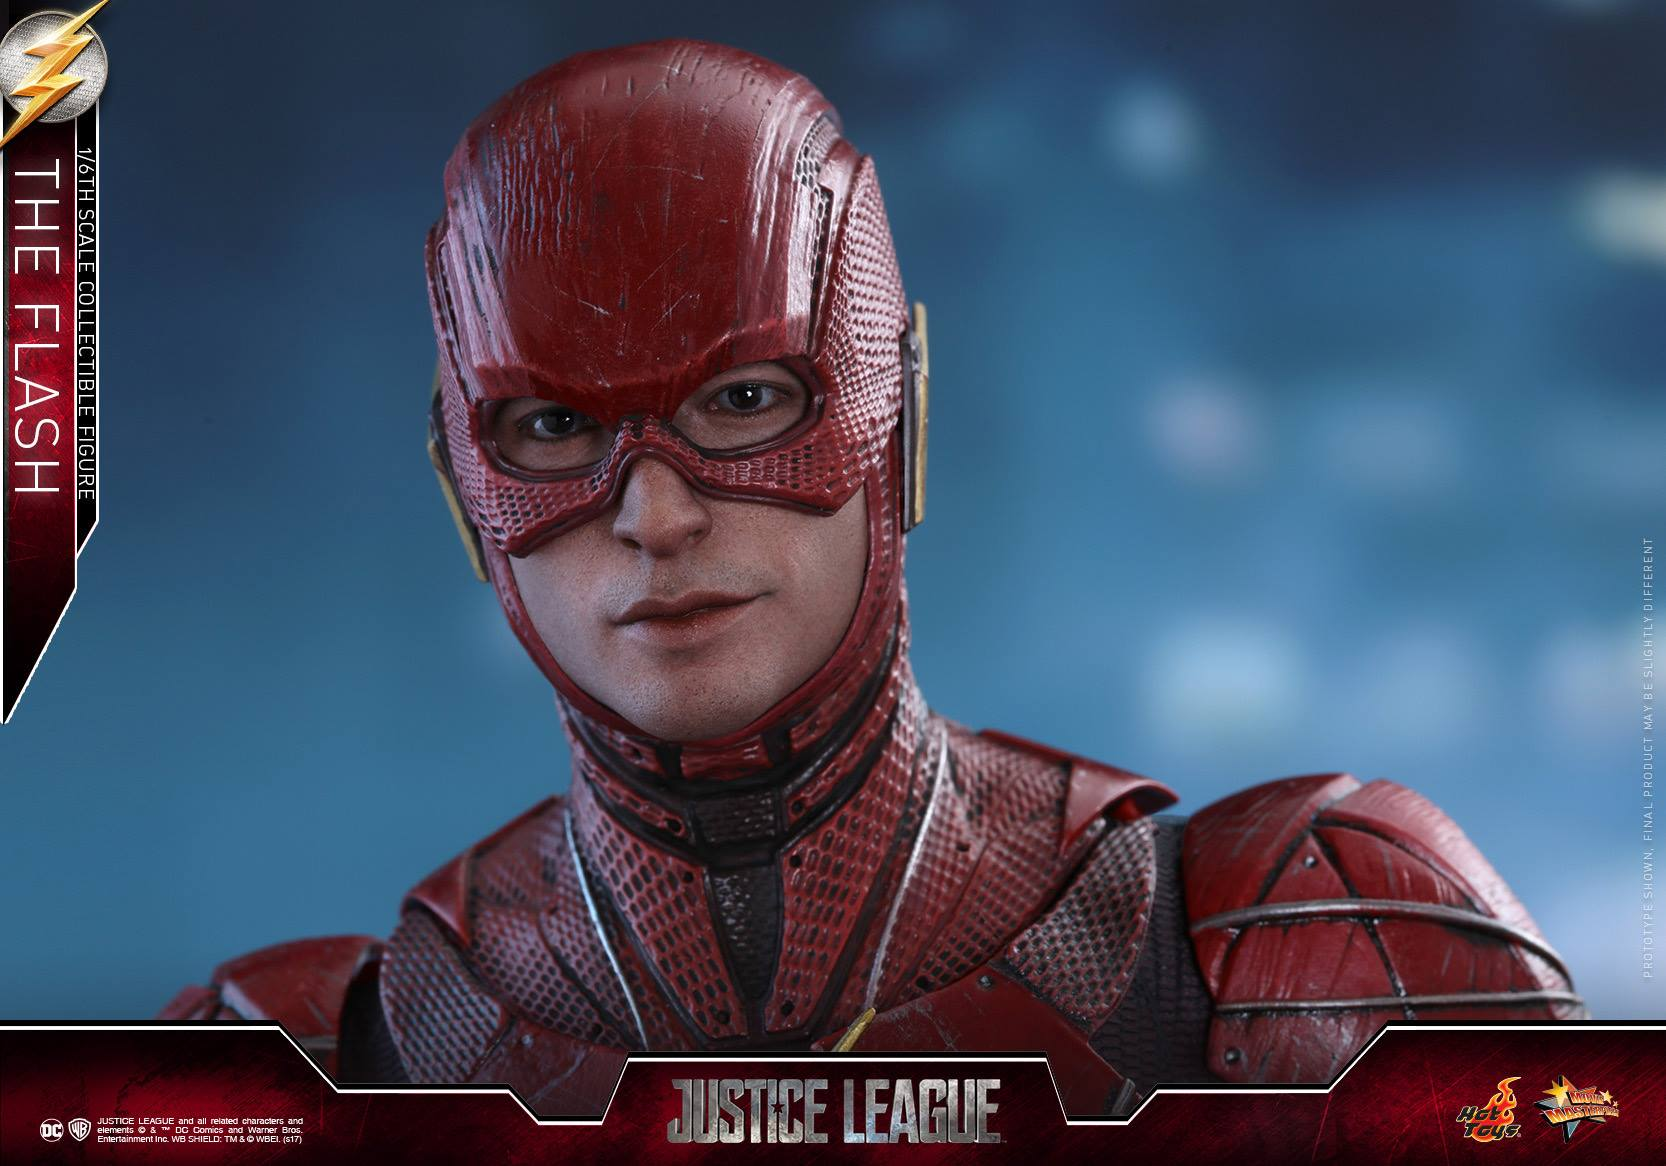 Hot-Toys-Justice-League-The-Flash-020